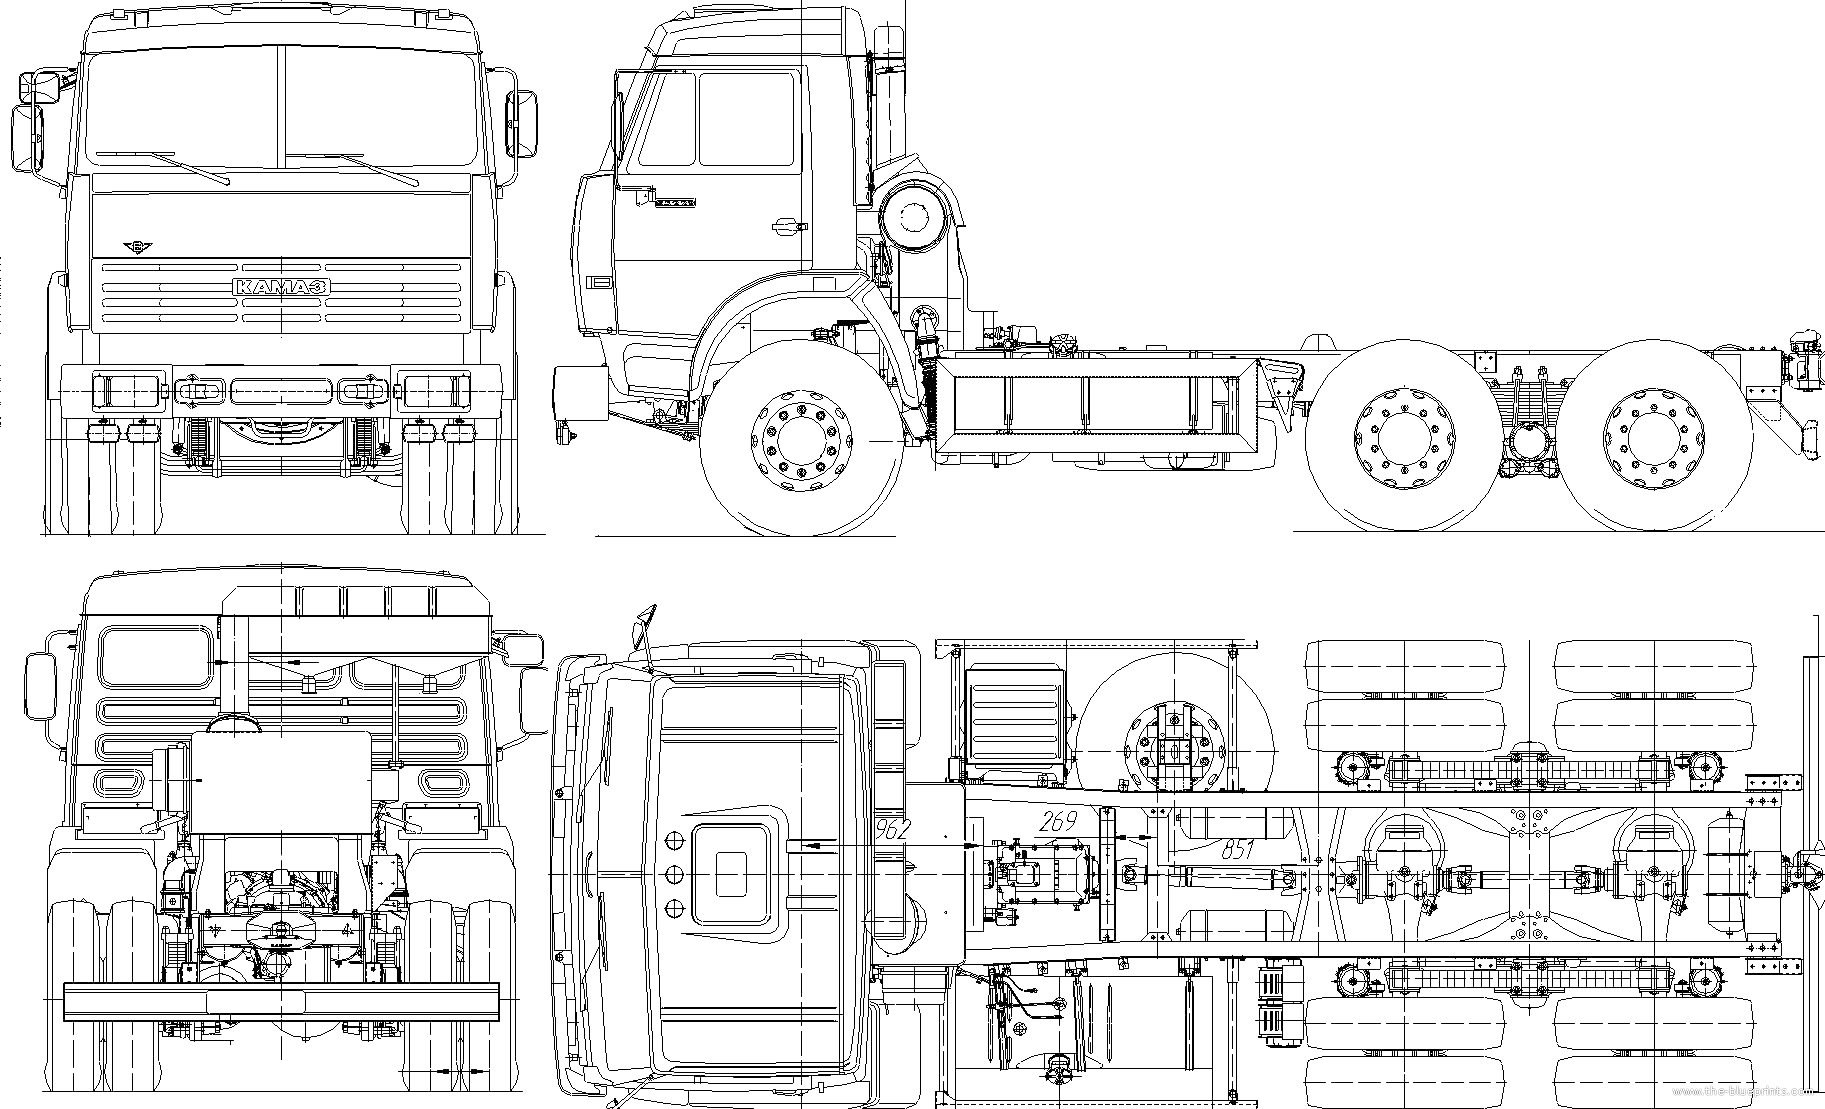 The Blueprints Com Blueprints Gt Trucks Gt Kamaz Gt Kamaz 53229